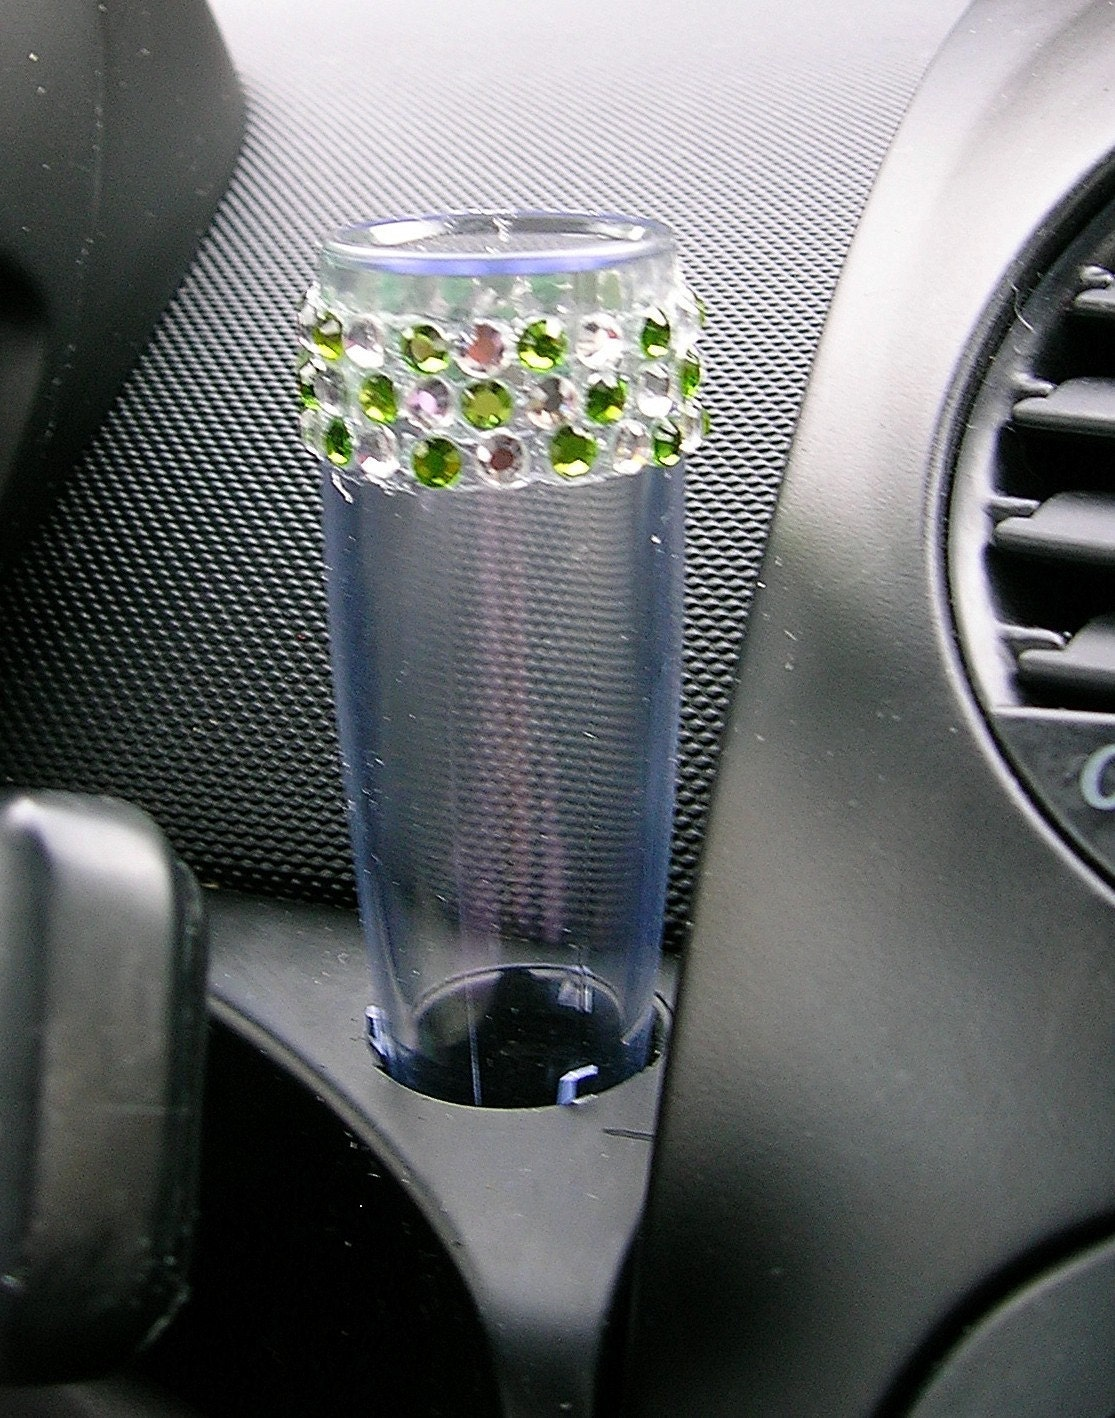 Vw Beetle Flower Vase Diamond And Green Bling